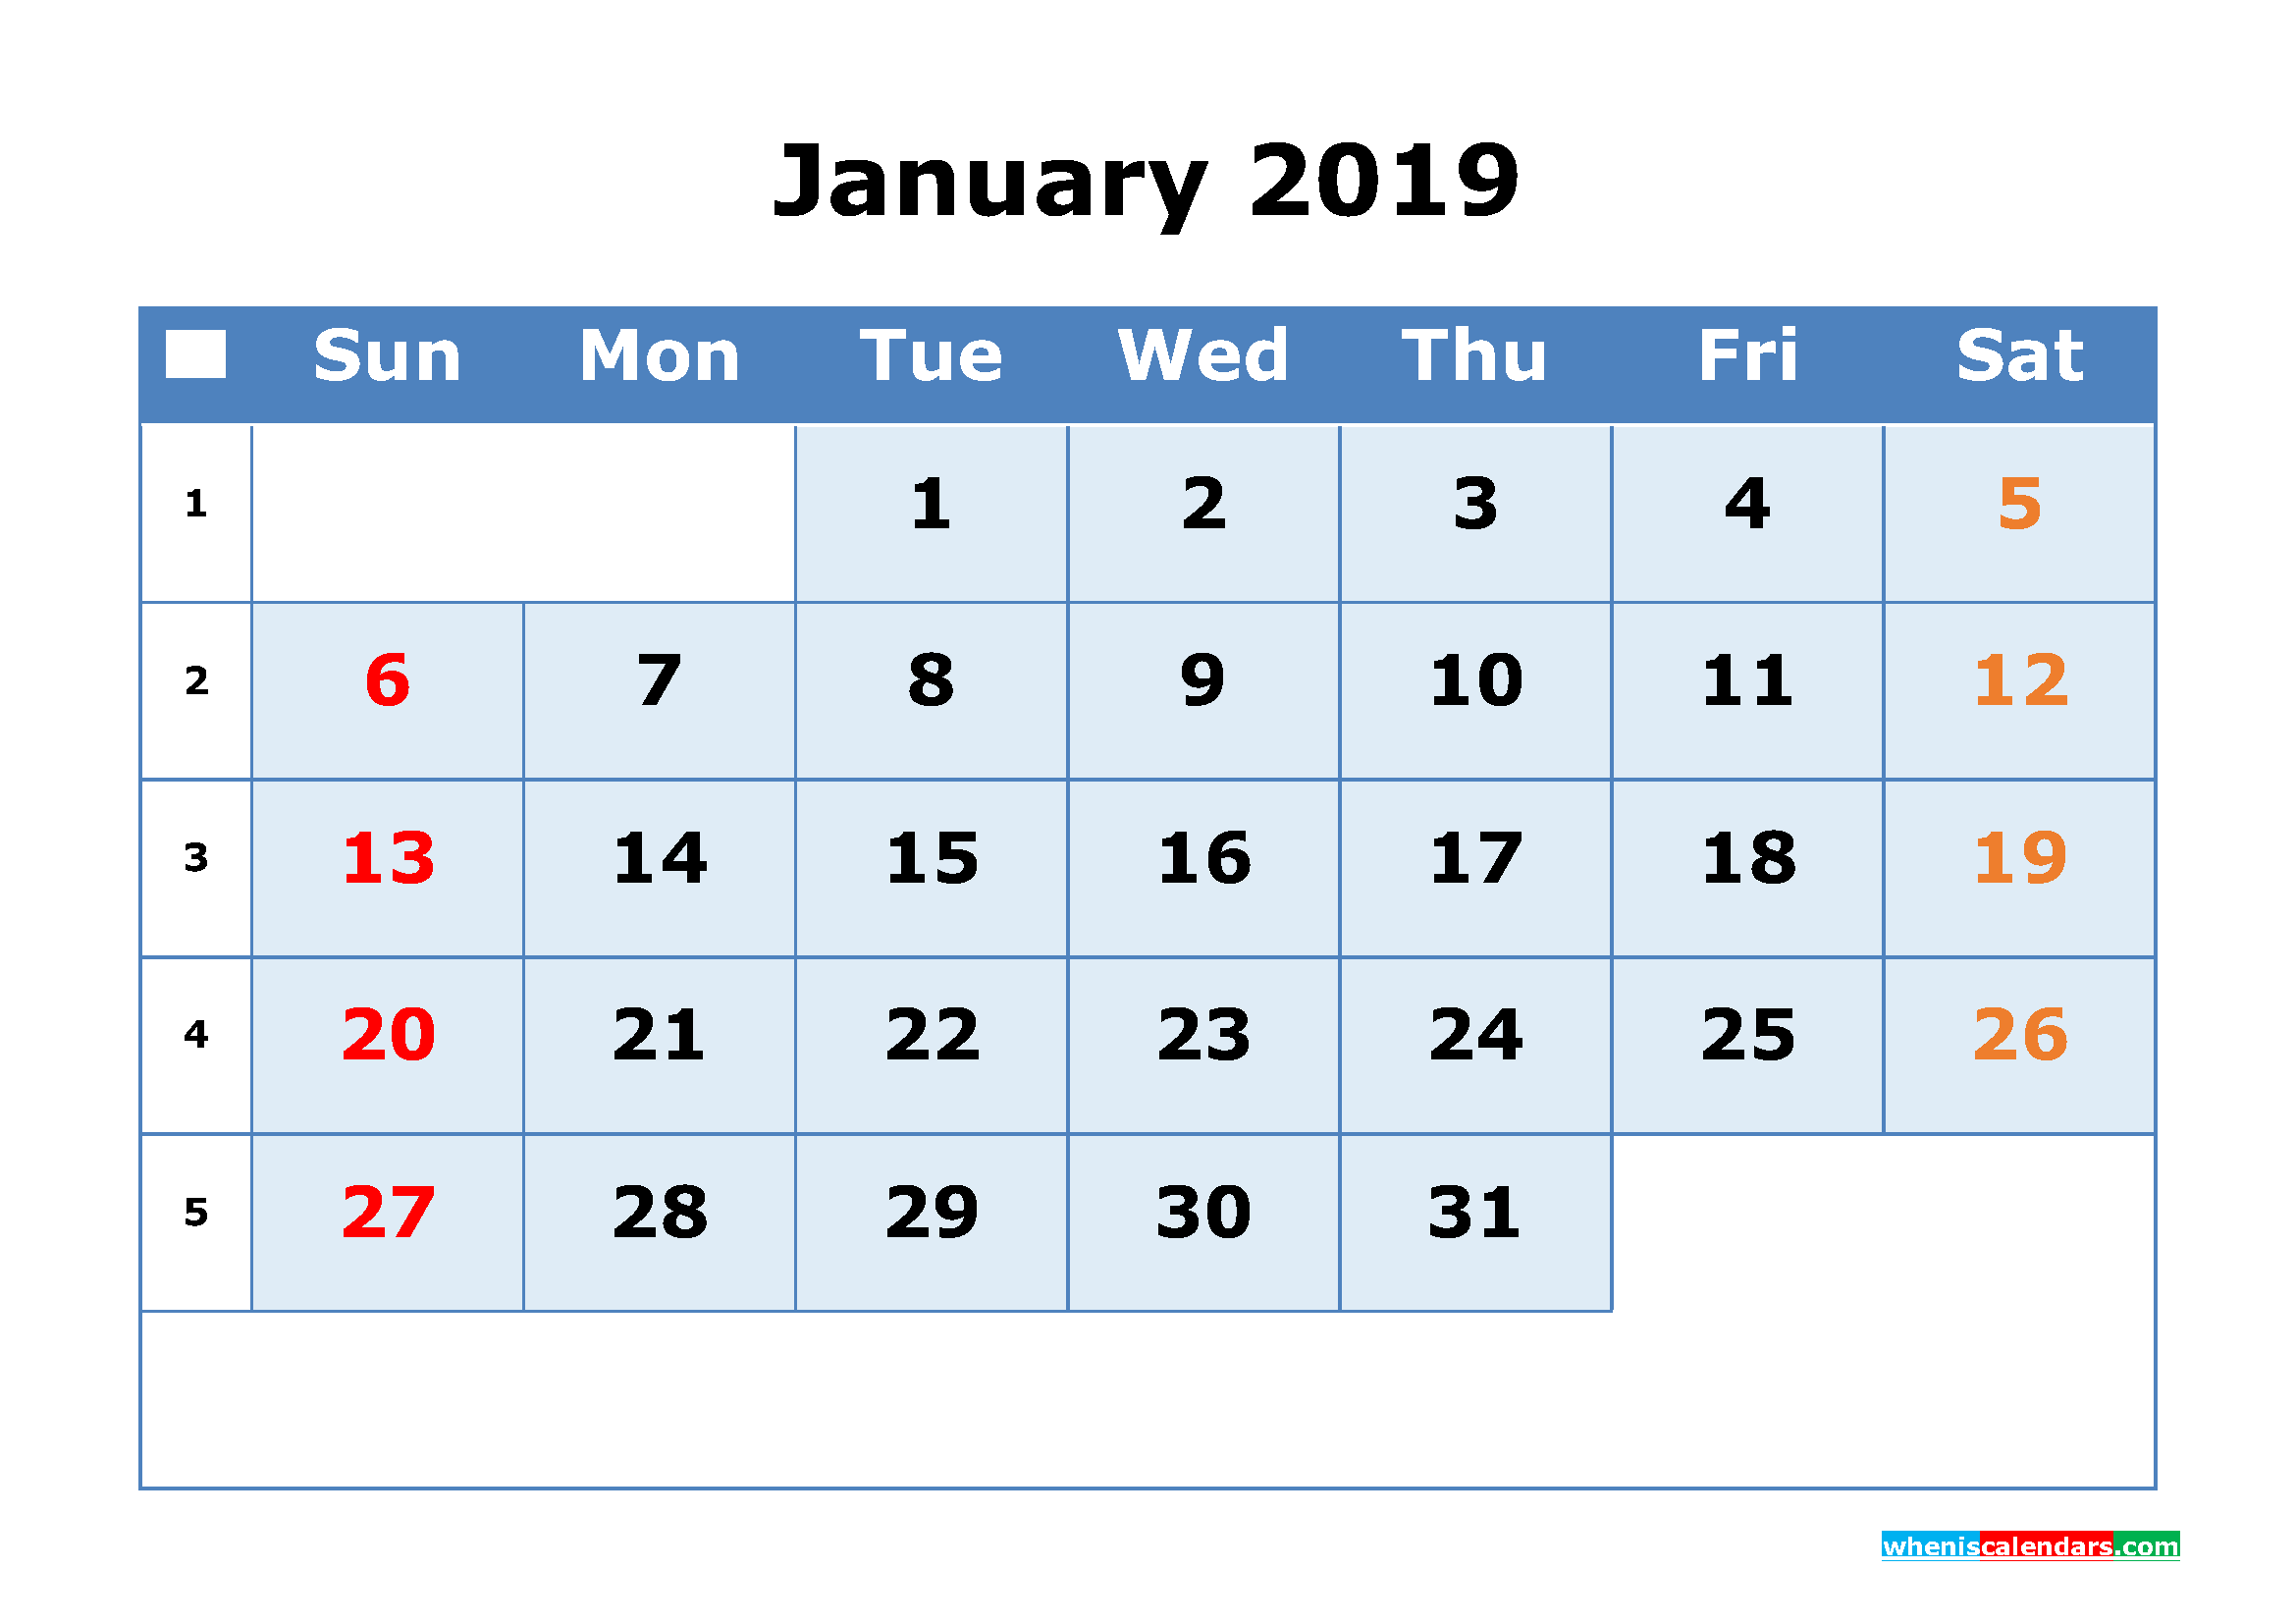 January 2019 Printable Calendar with Week Numbers as PDF, JPG